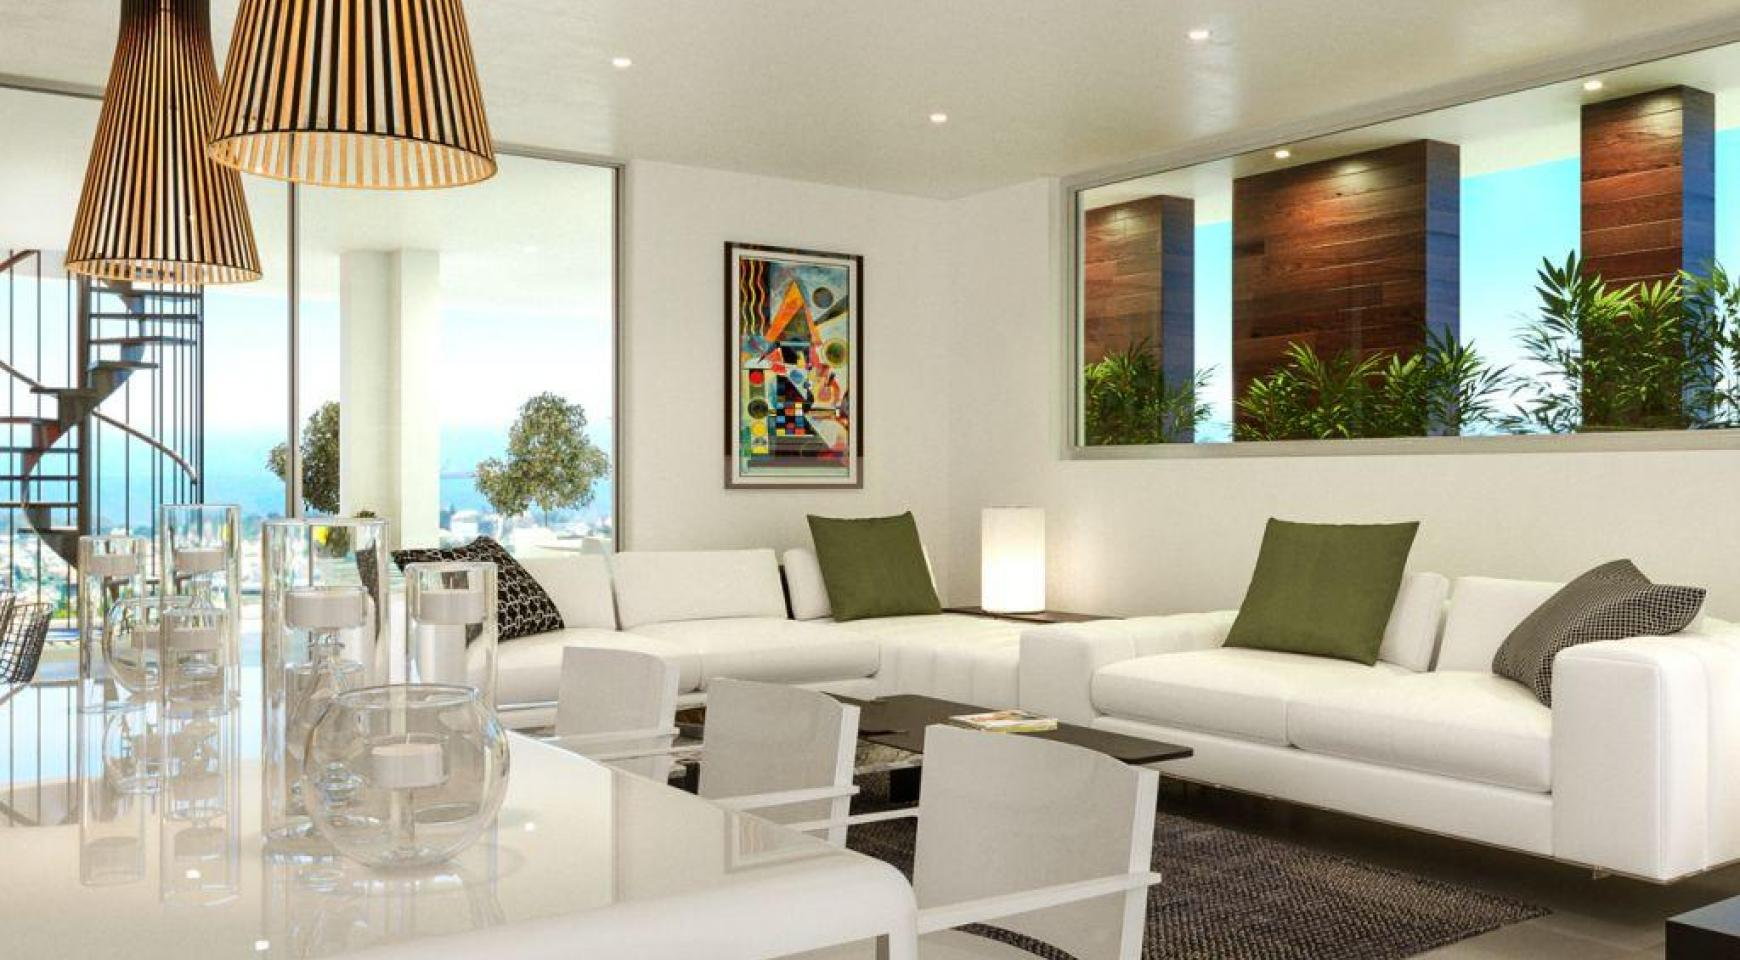 Contemporary 2 Bedroom Apartment in a New Project in Columbia Area - 1